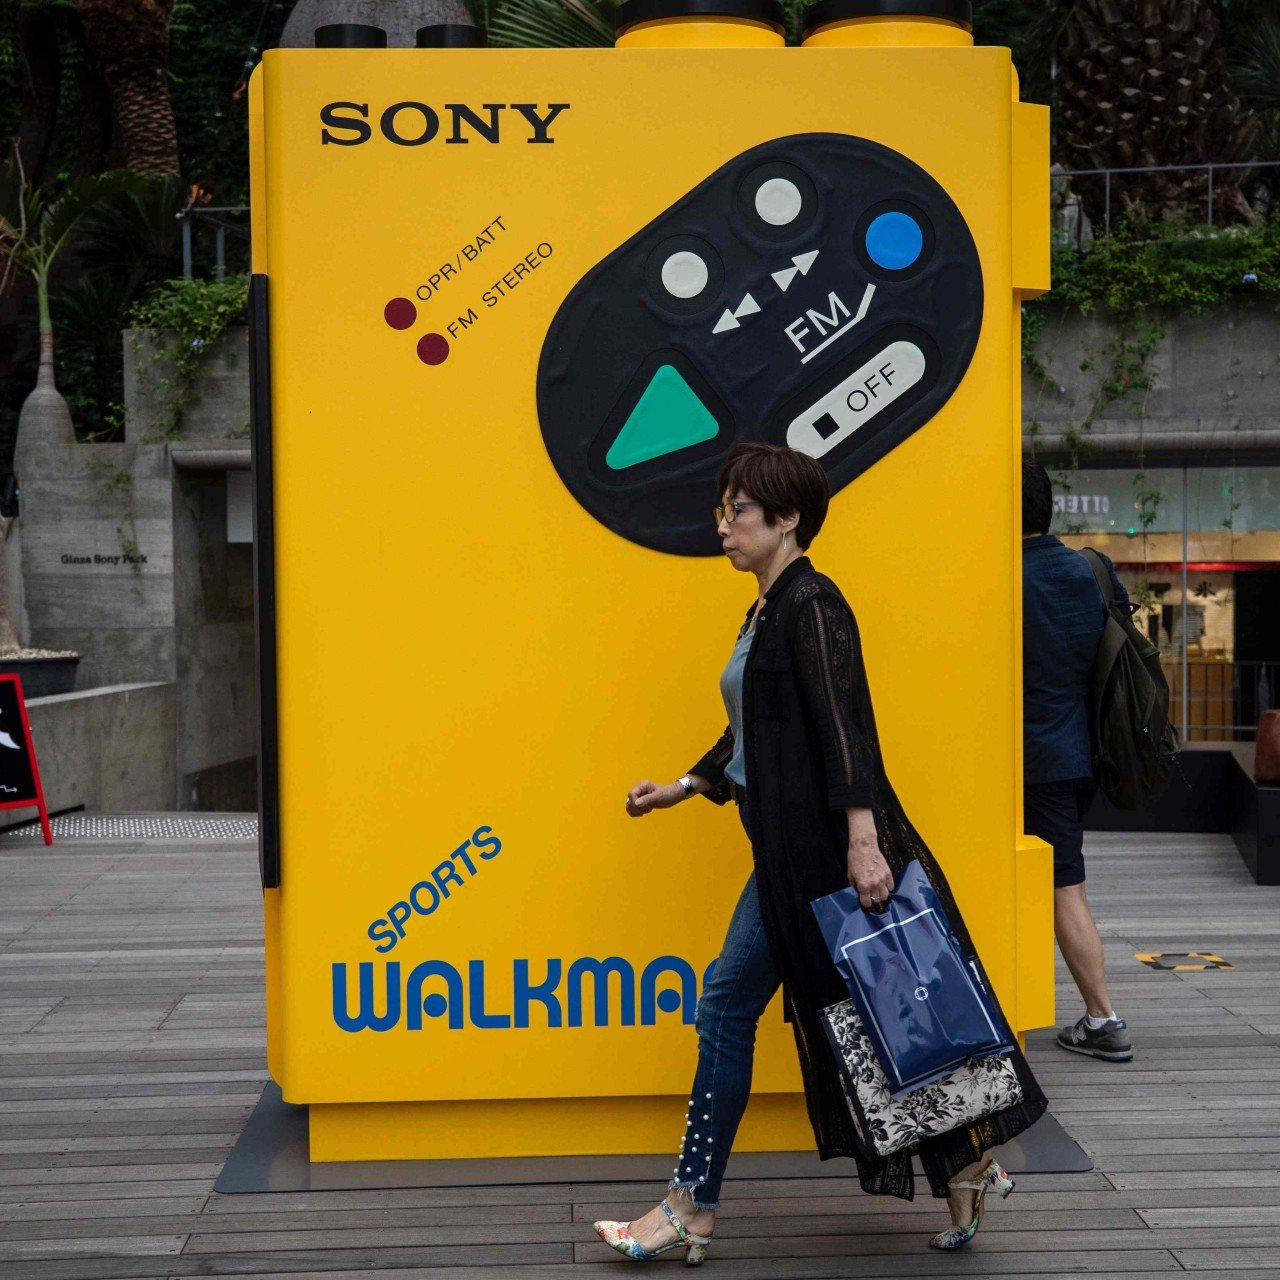 MP3 players are making a comeback with travellers – seven